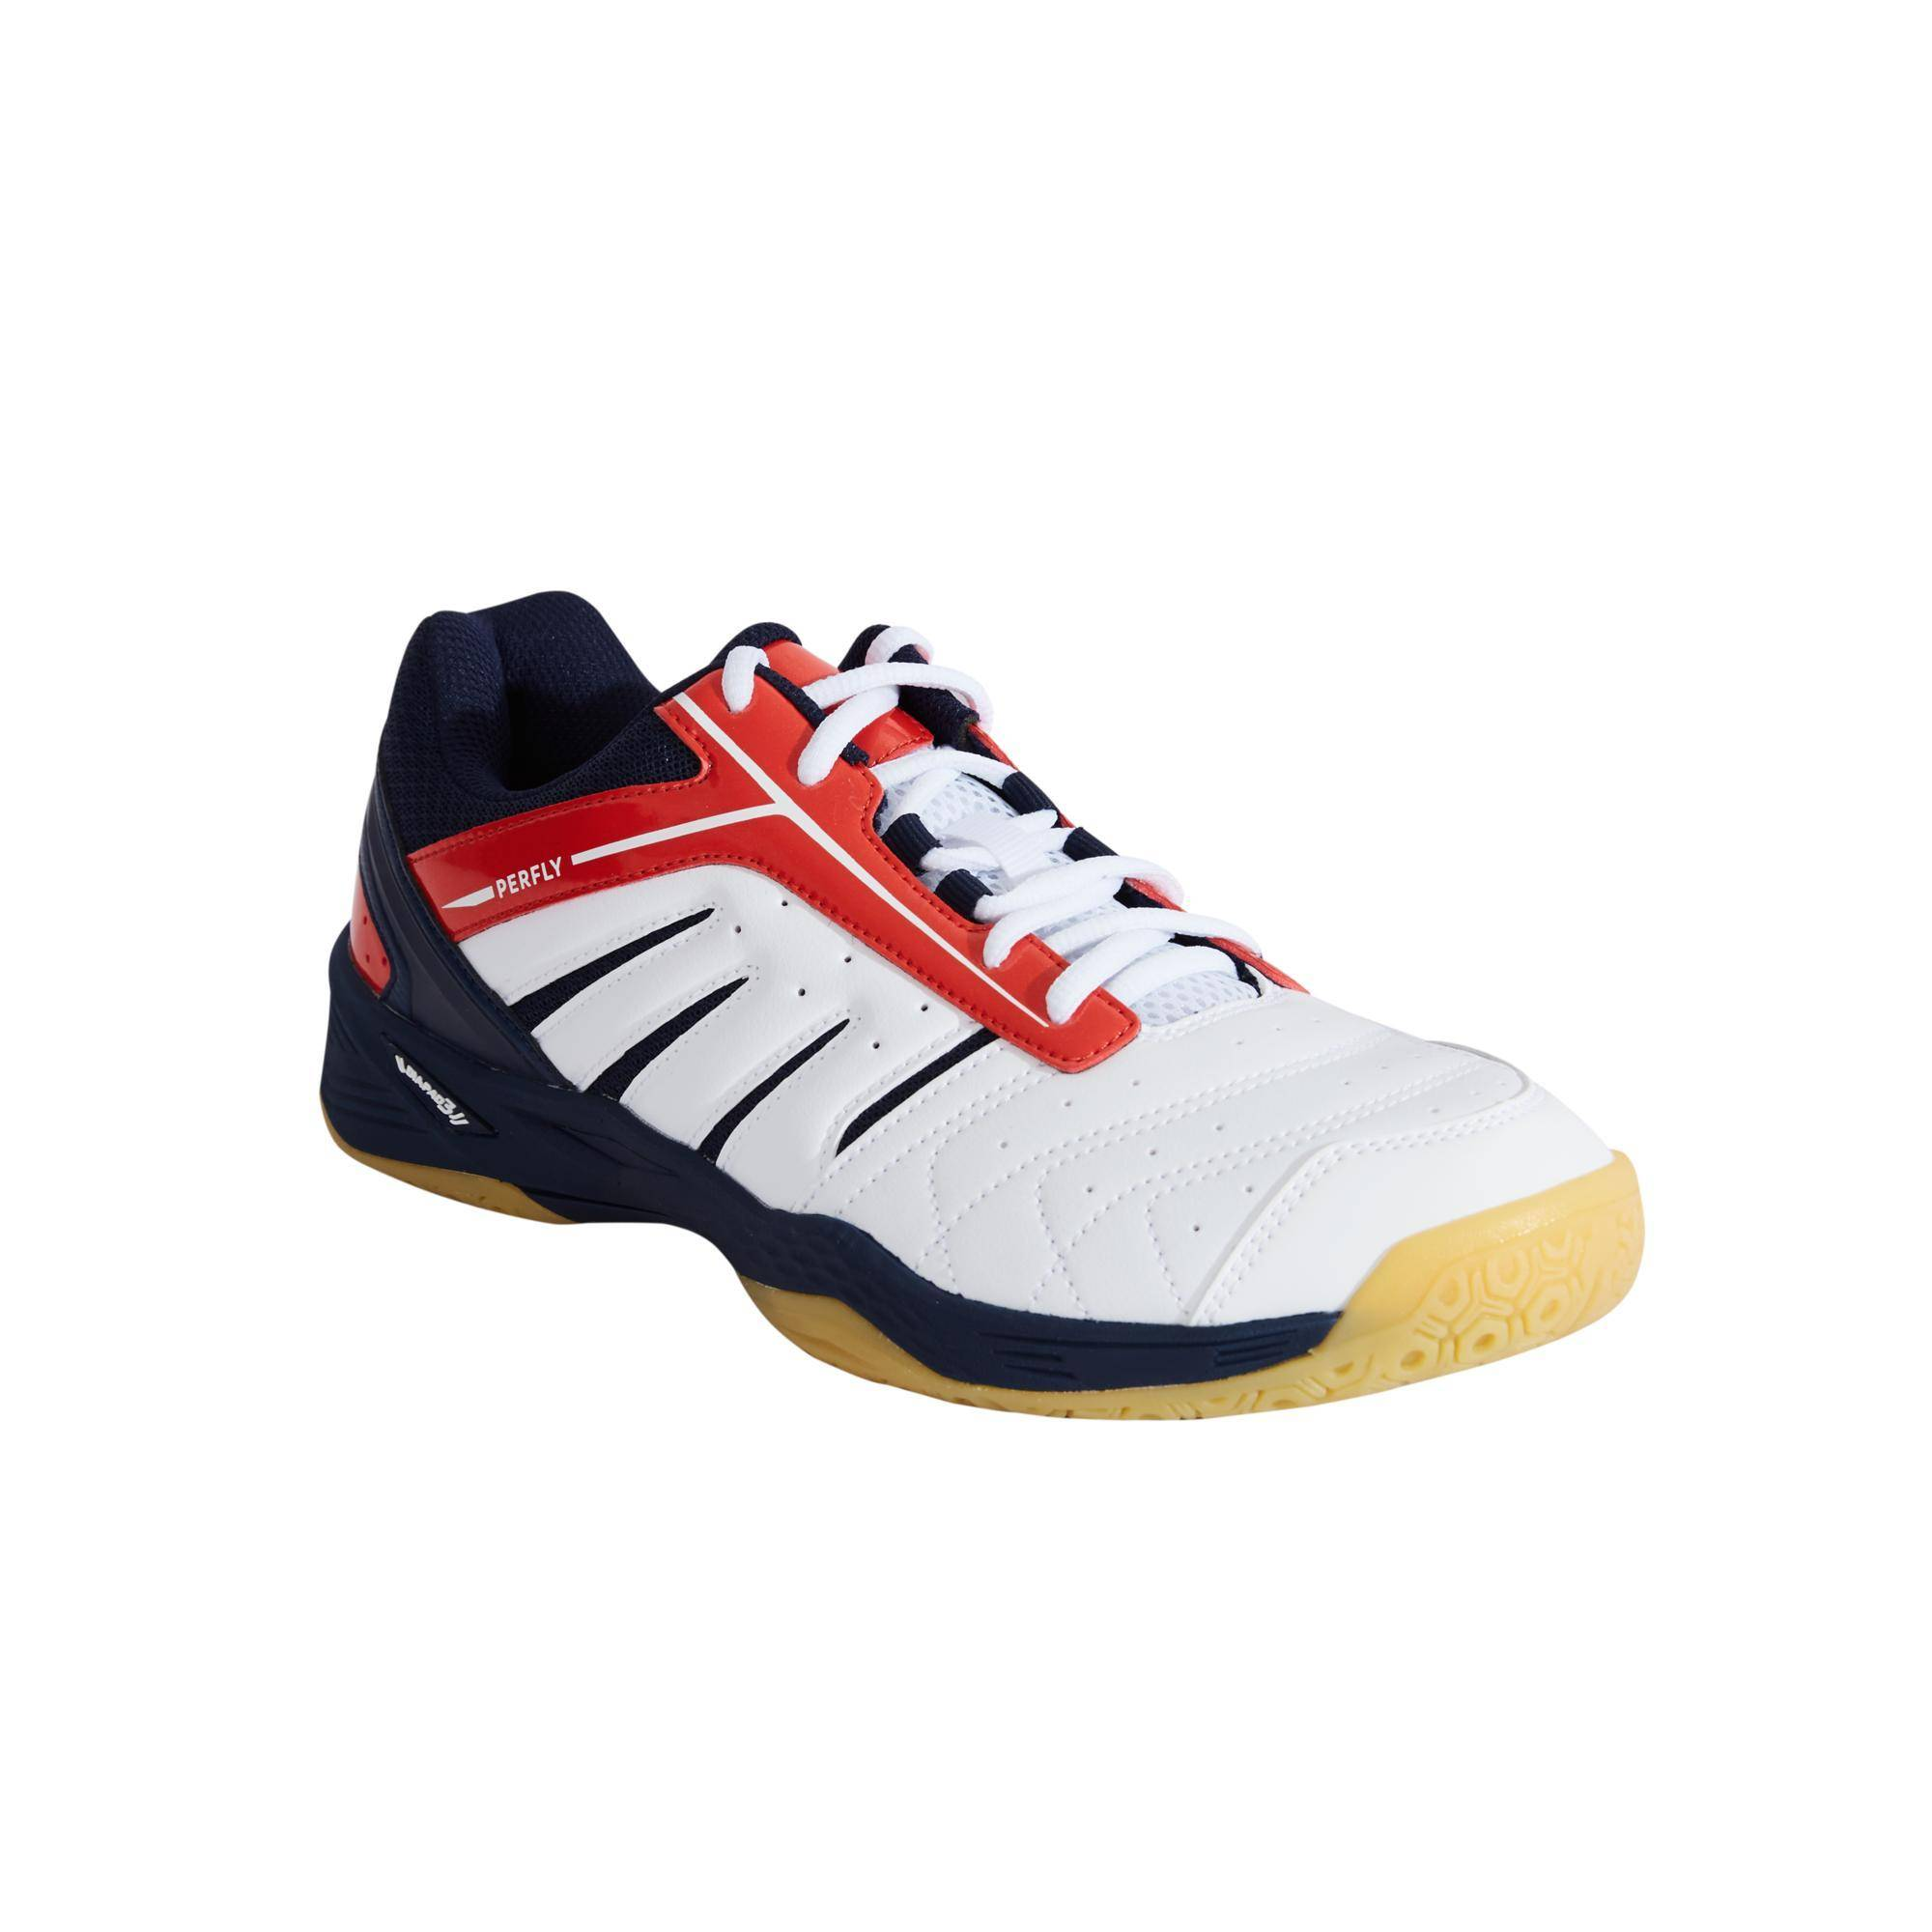 Perfly Chaussures De Badminton pour Homme BS560 Lite - Blanc/Rouge - Perfly